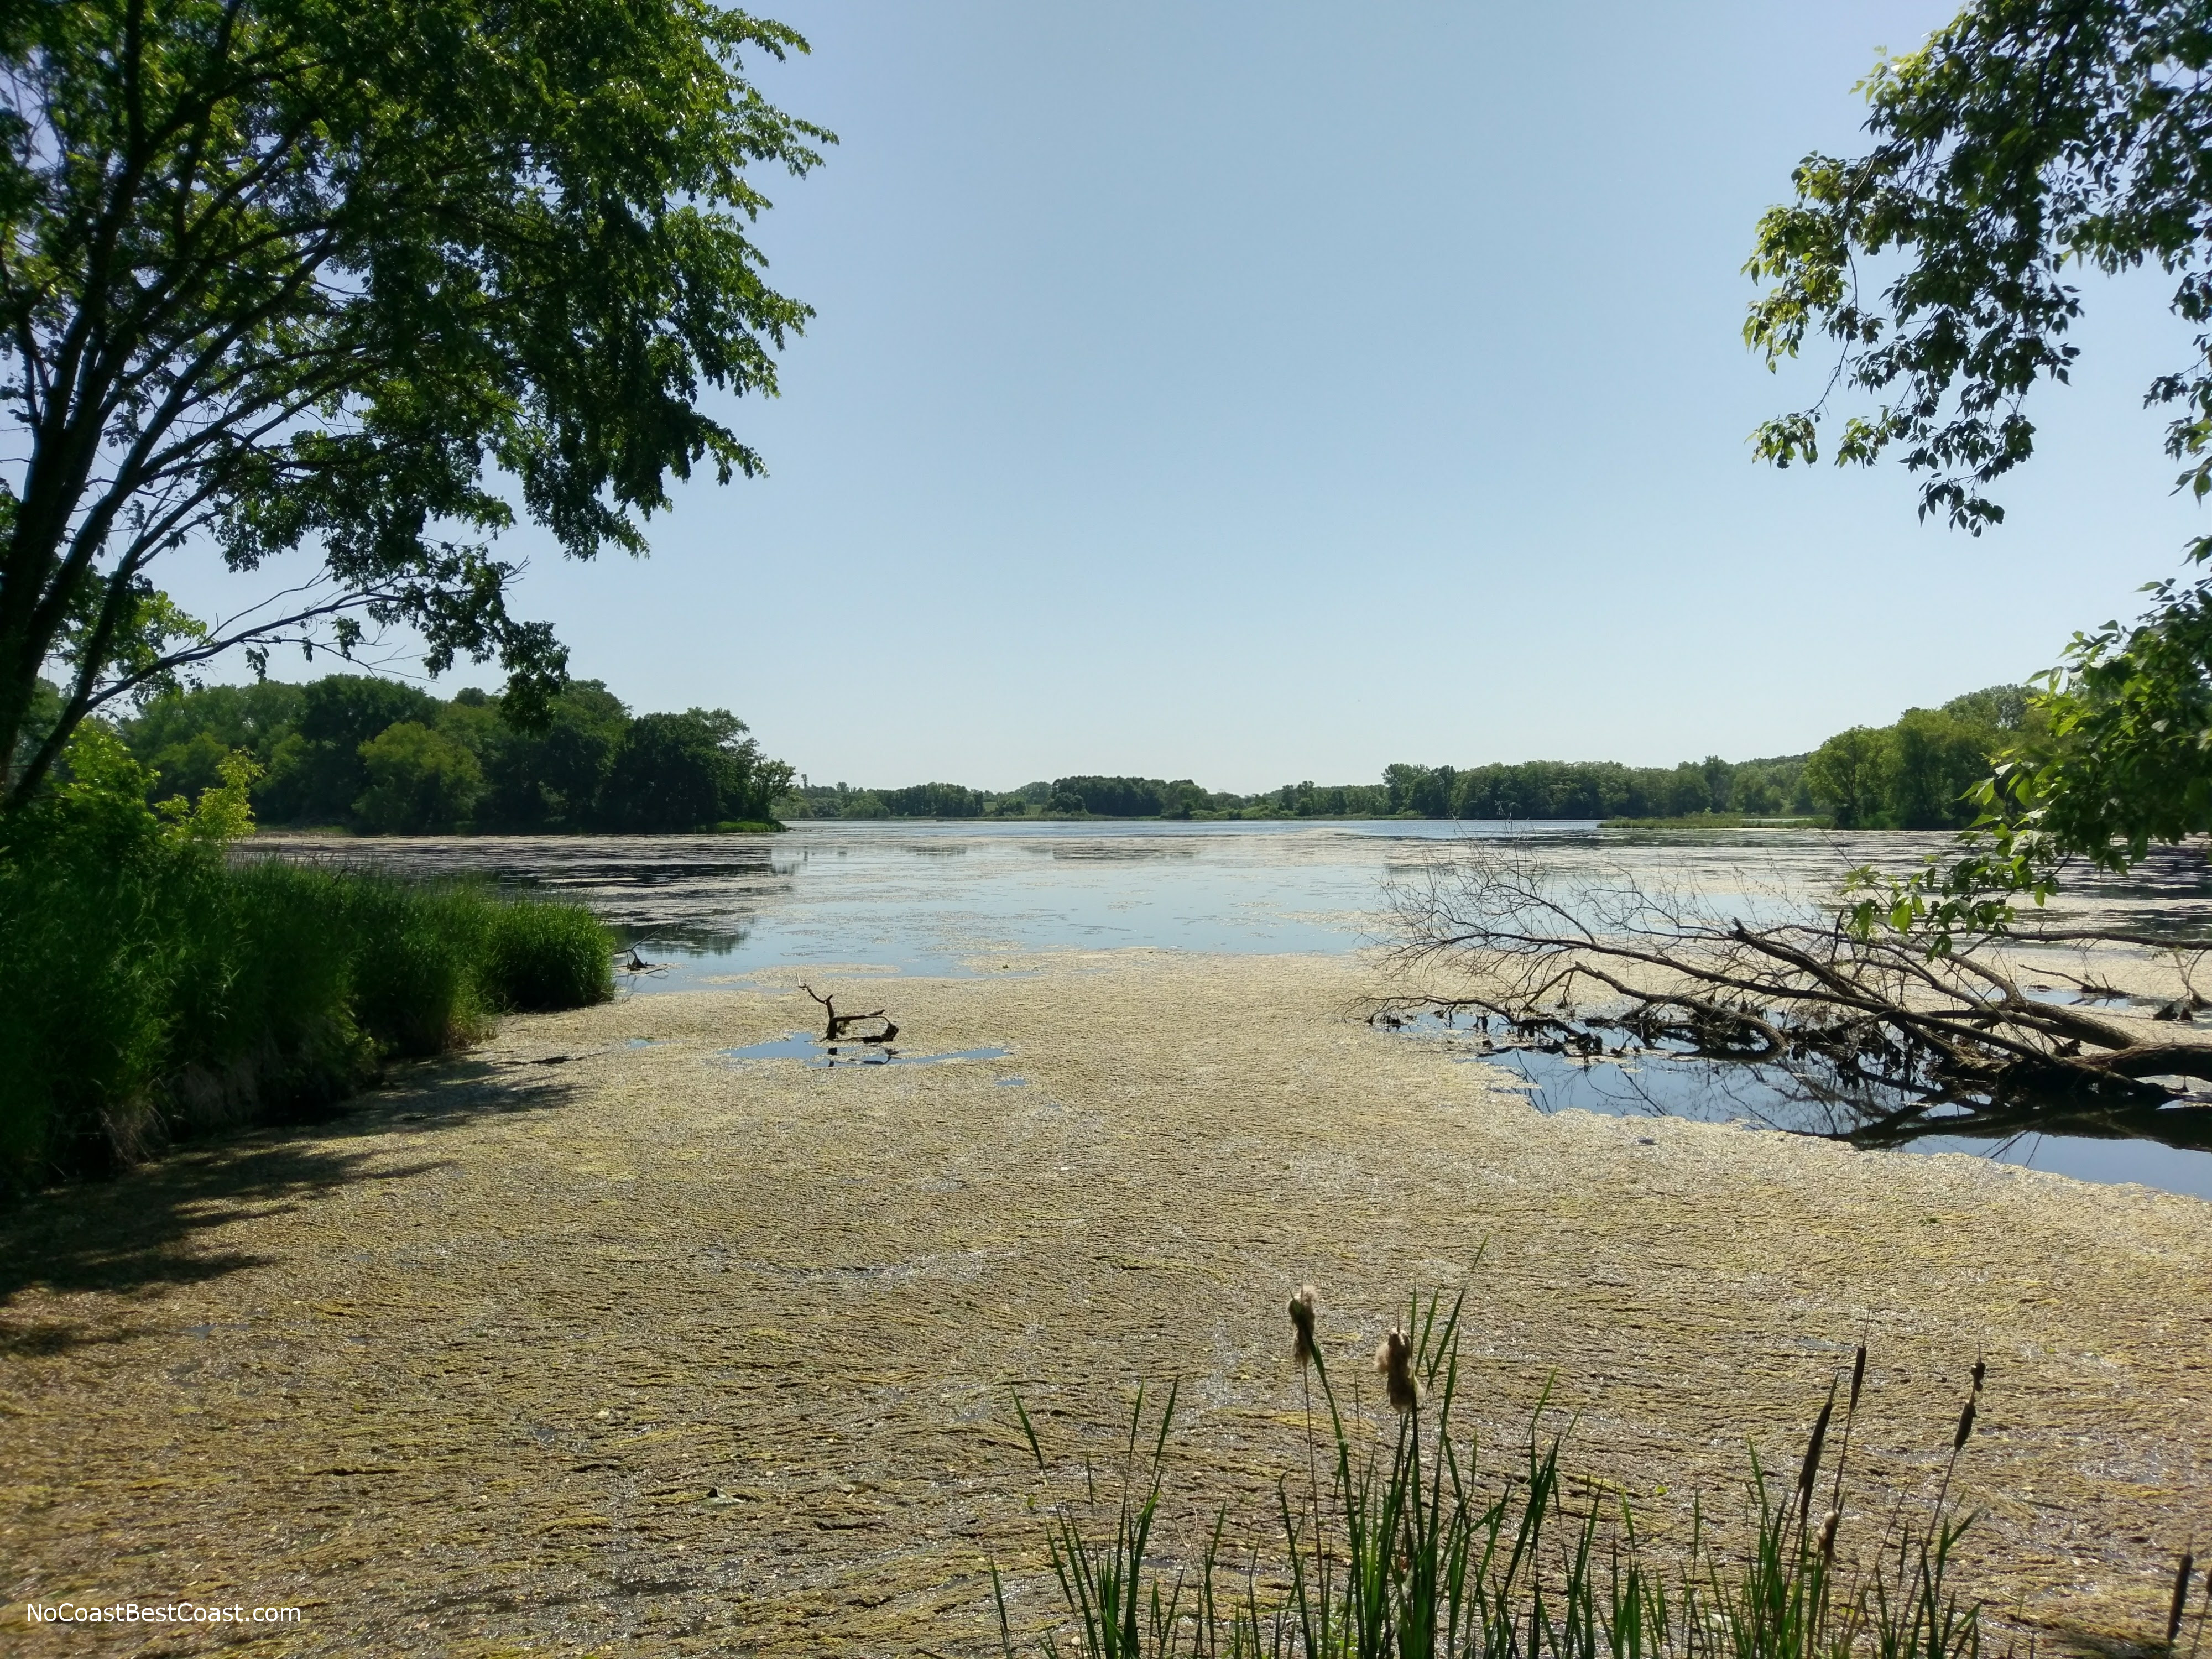 A yellow algae bloom adding more color to one of the pretty lakes in Carver Park Reserve